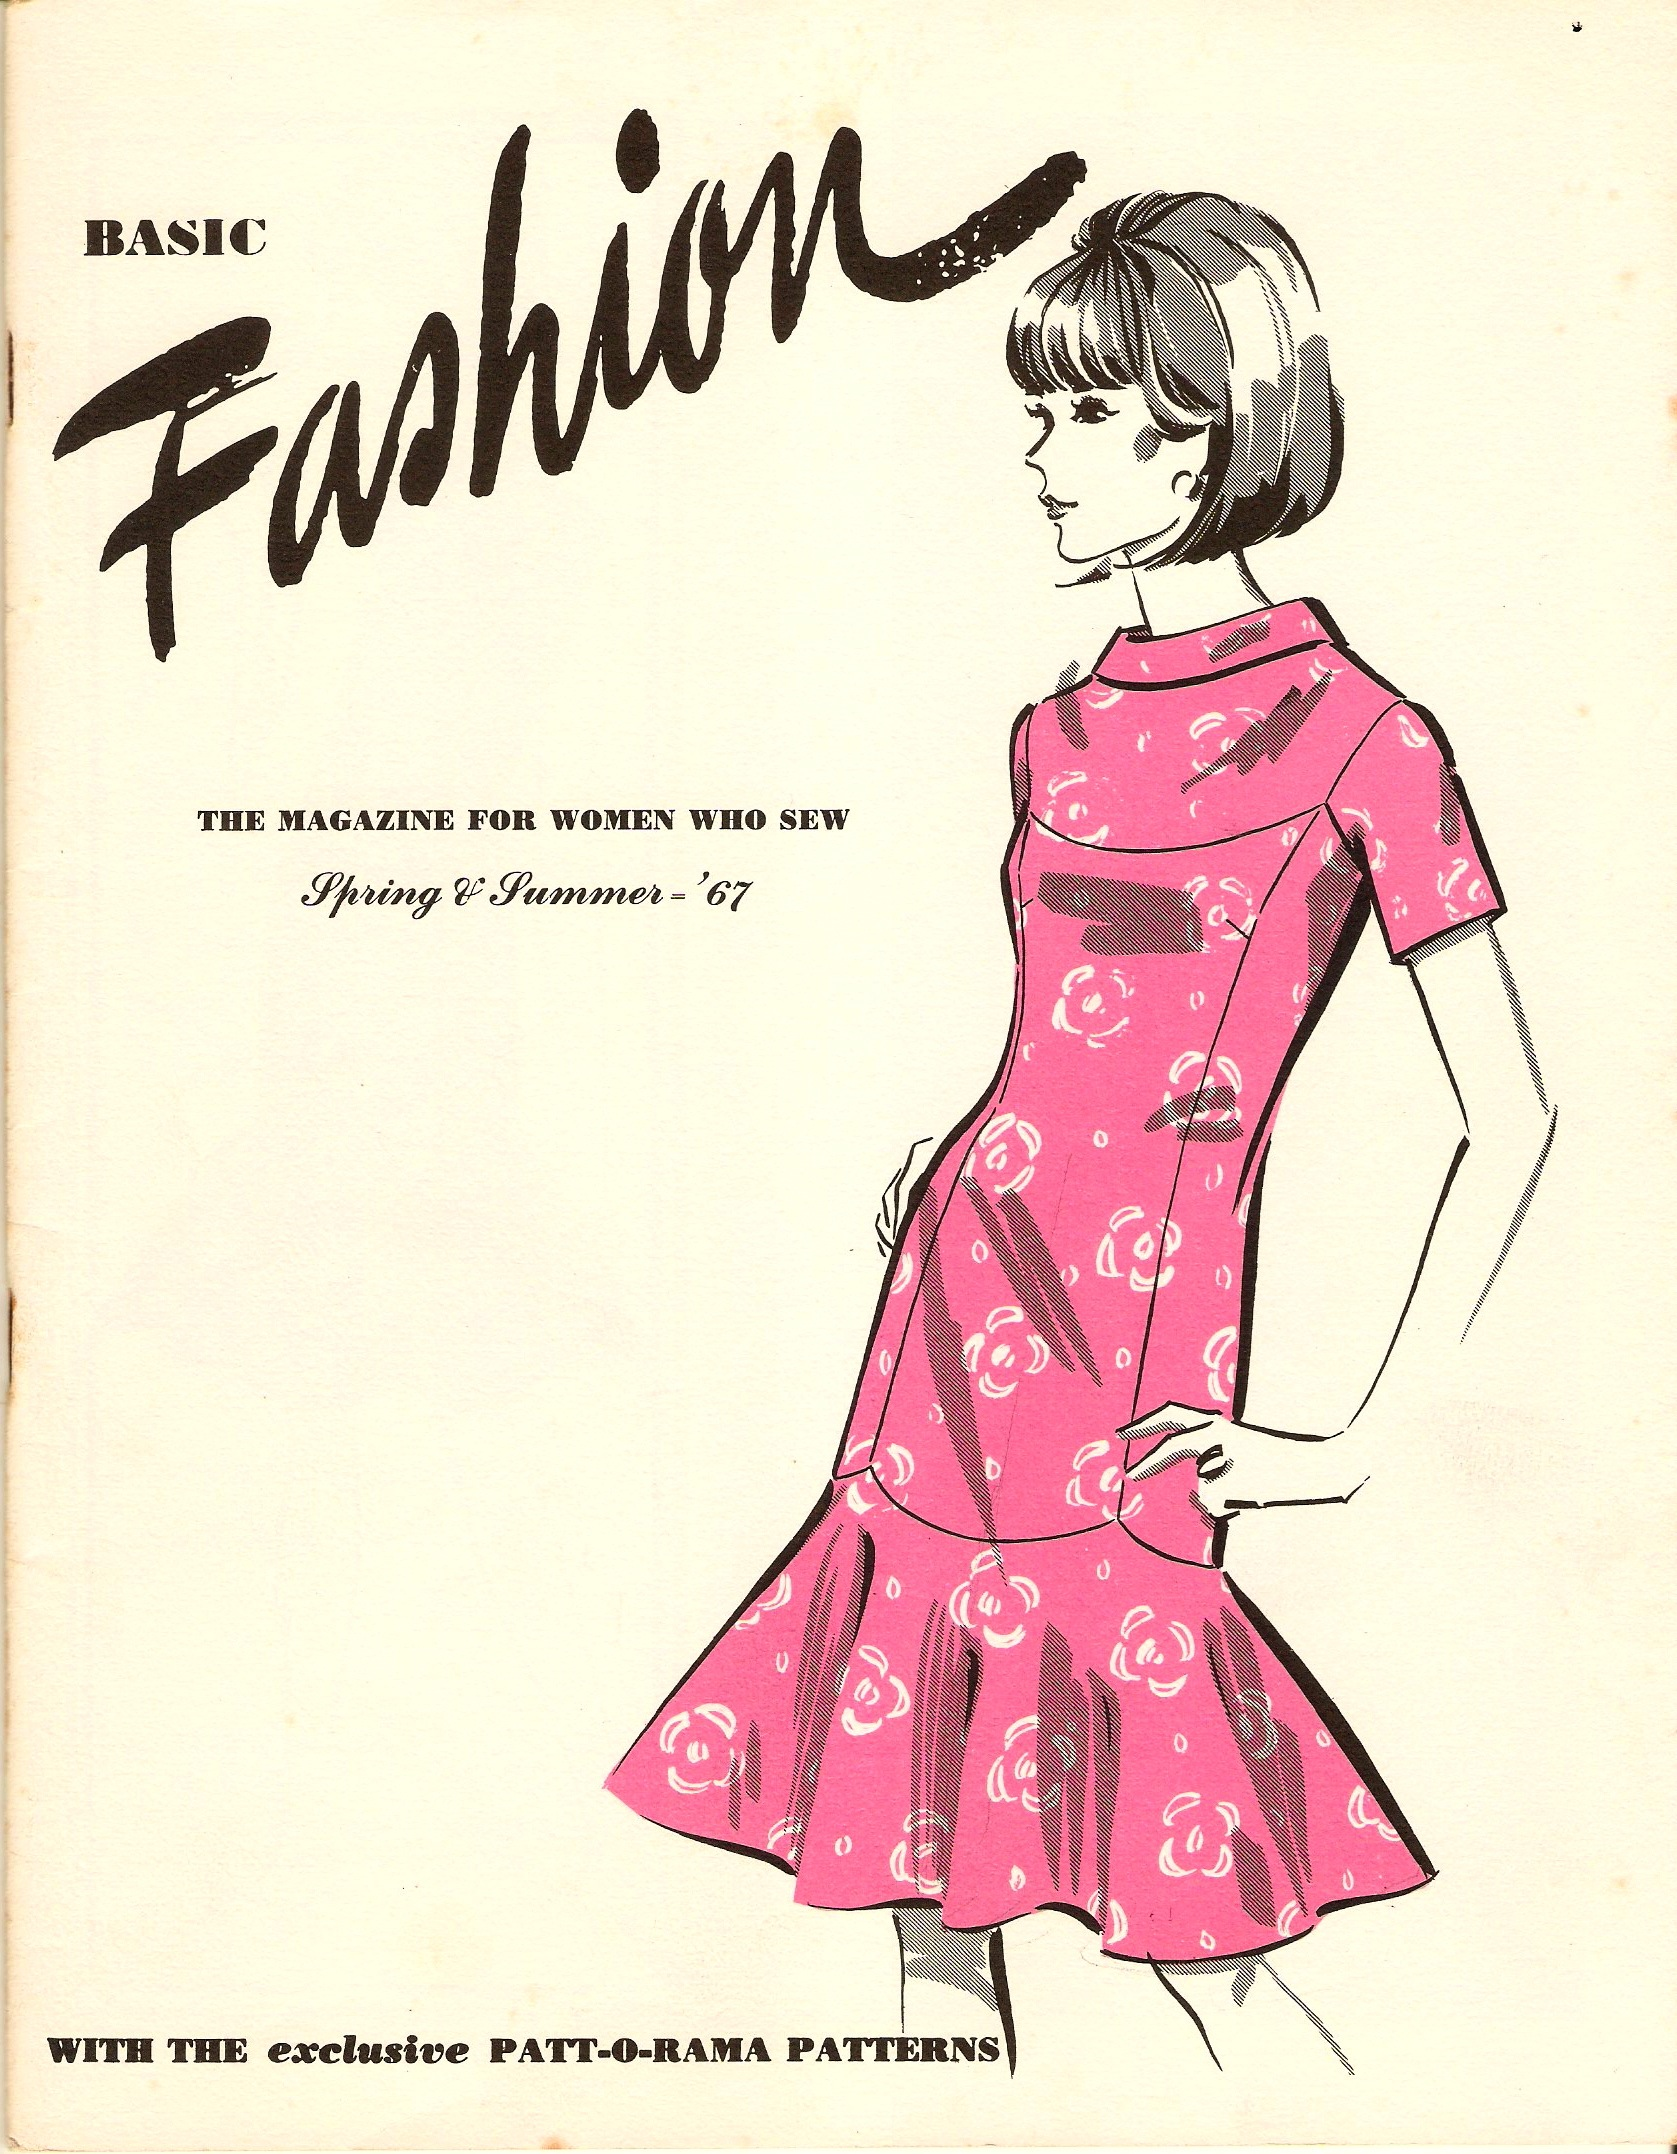 Basic Fashion Spring & Summer 1967